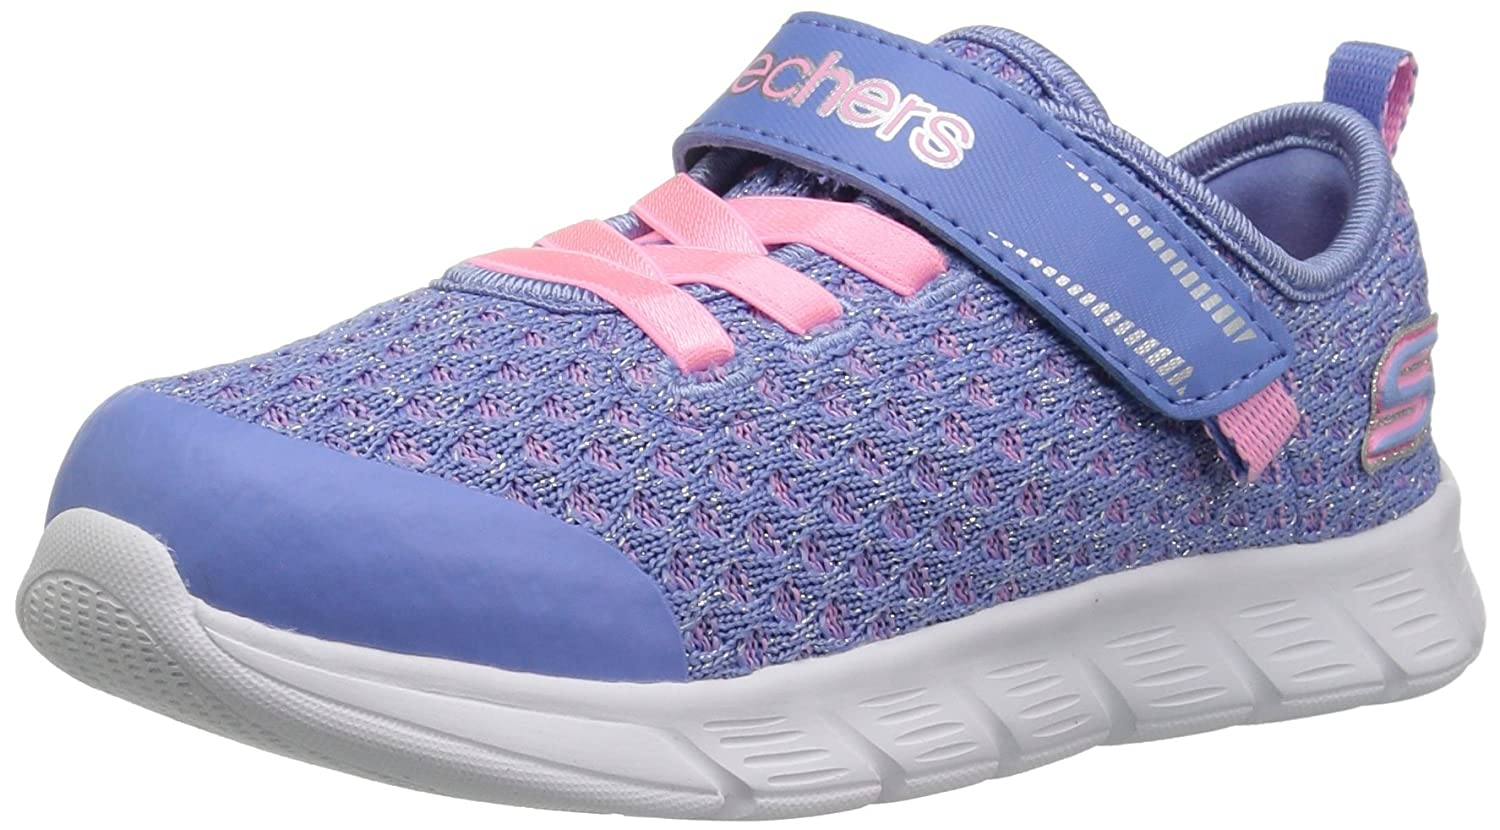 Skechers ユニセックスキッズ 82188N B0777FGYKL 10.5 Medium US Little Kid|Periwinkle/Pink Periwinkle/Pink 10.5 Medium US Little Kid